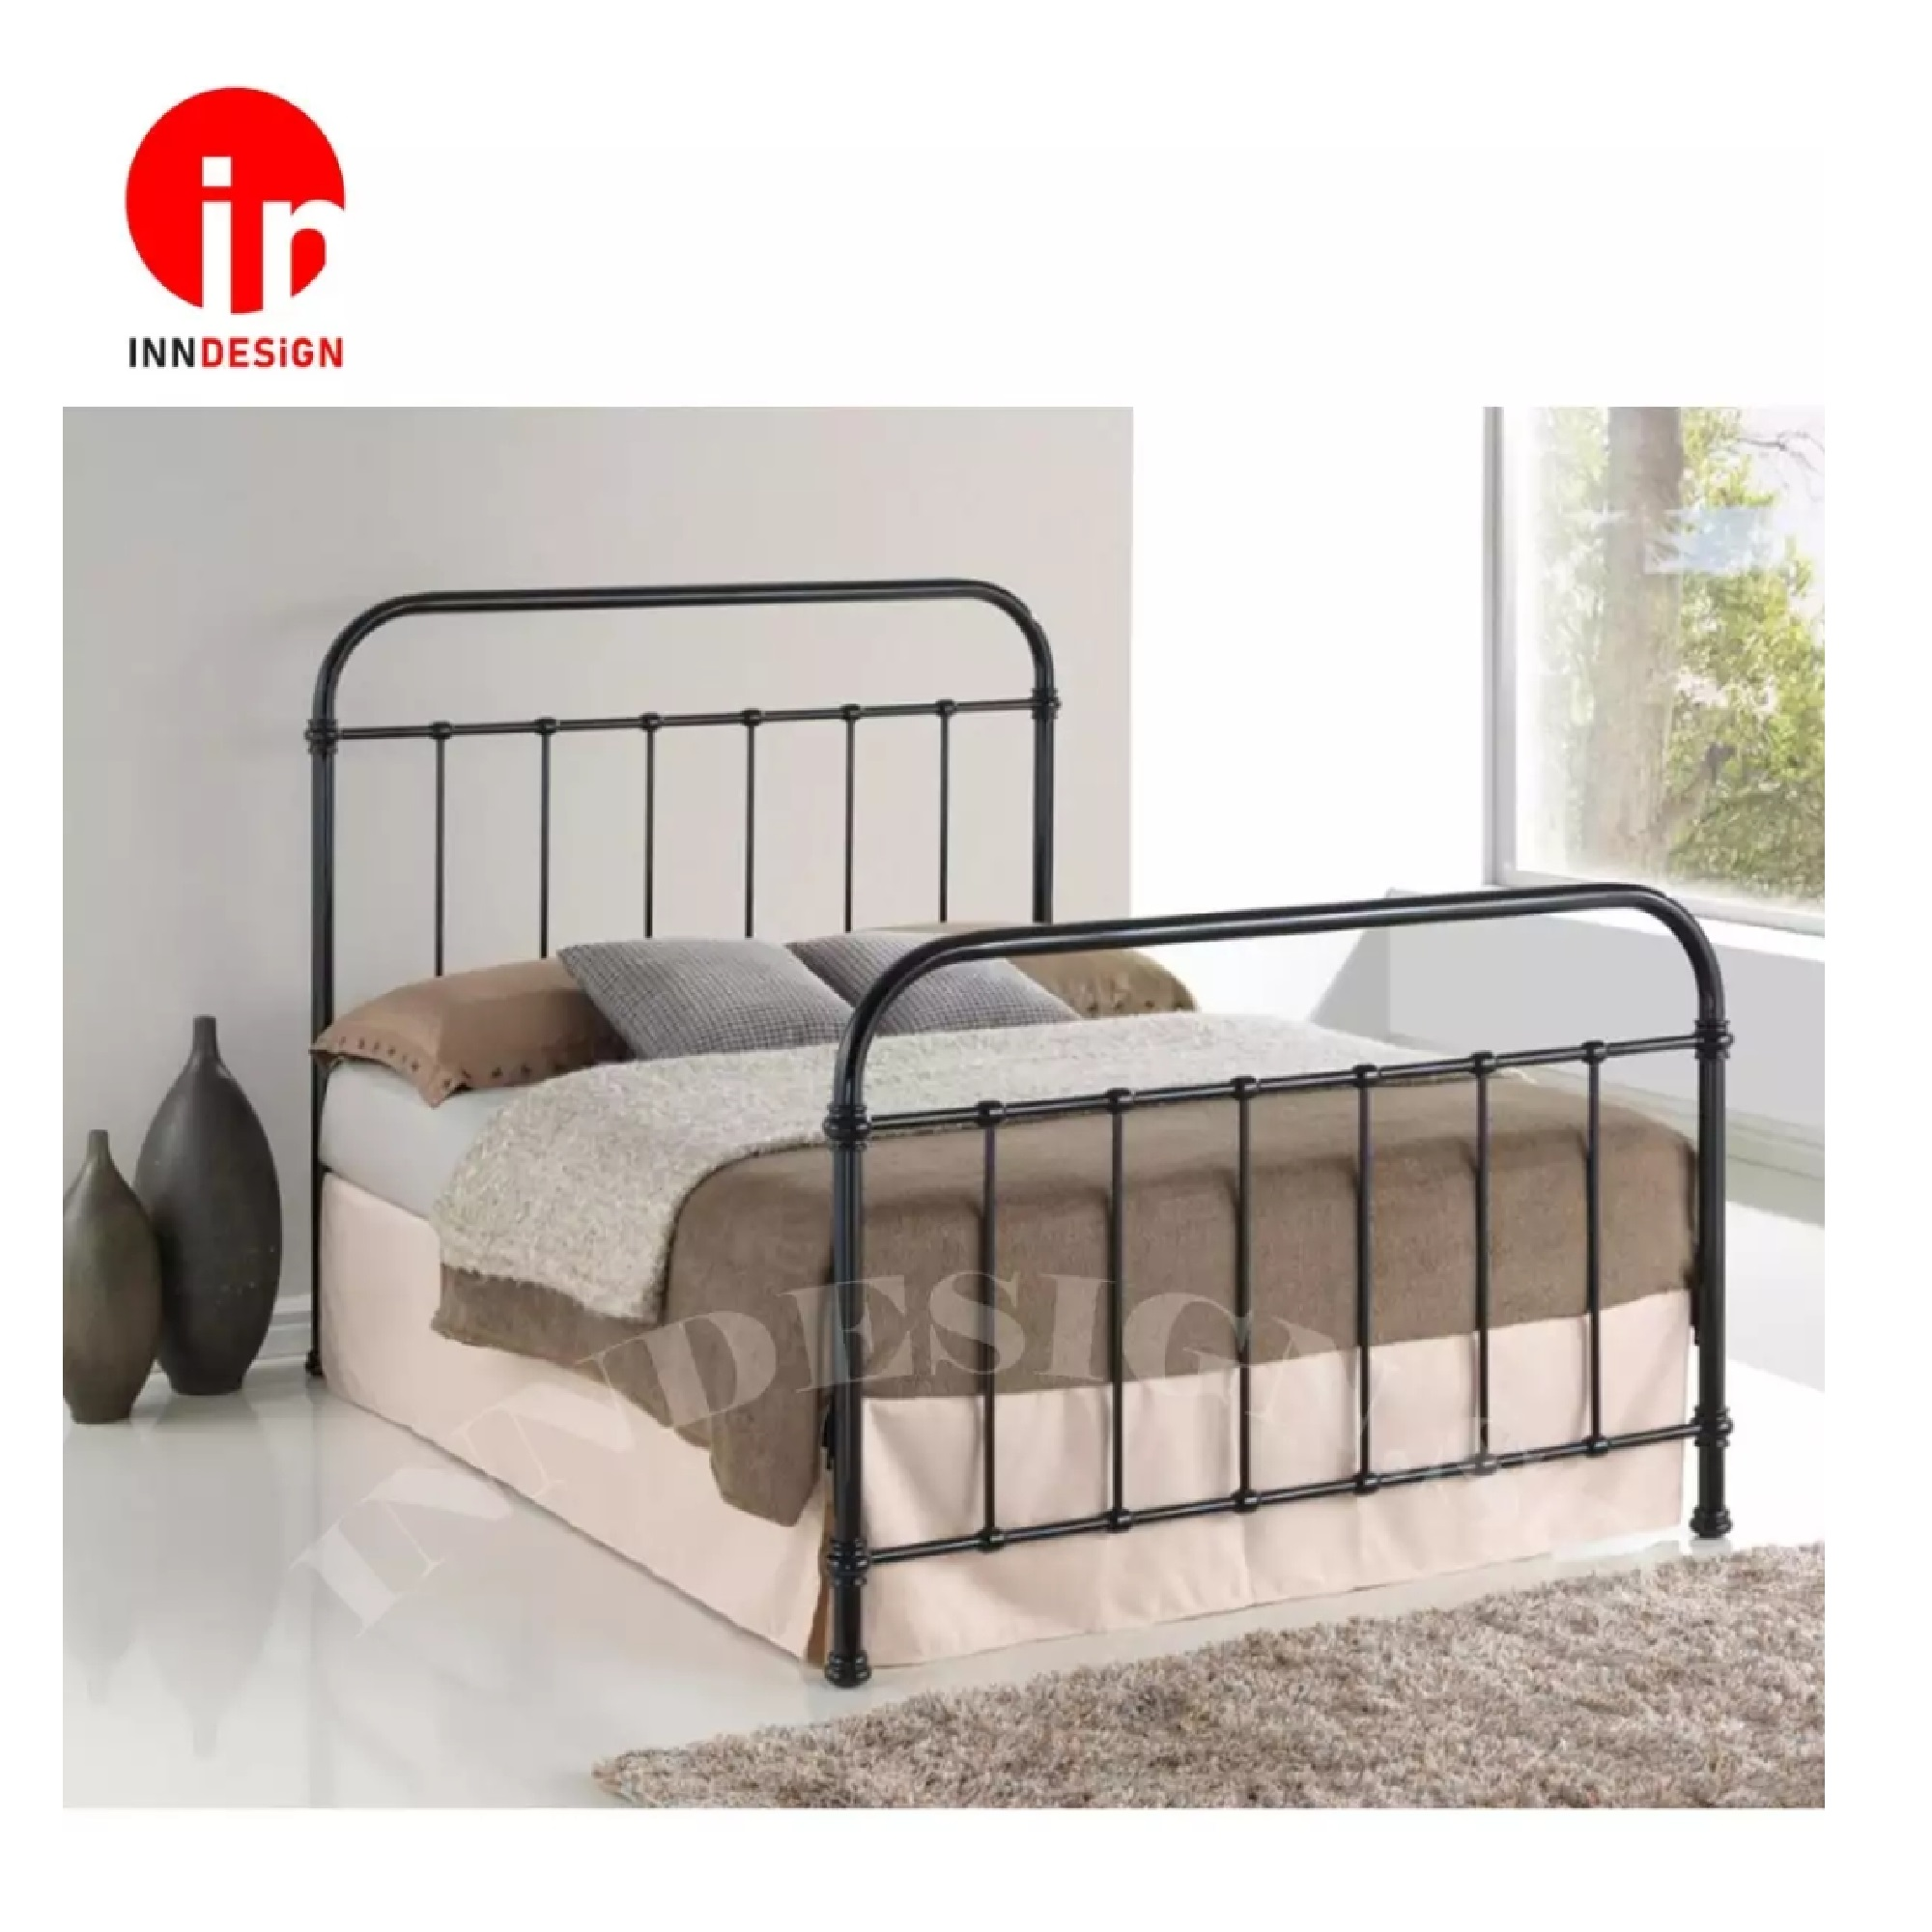 Edi Queen Metal Bed / Metal Bed Frame (Black)